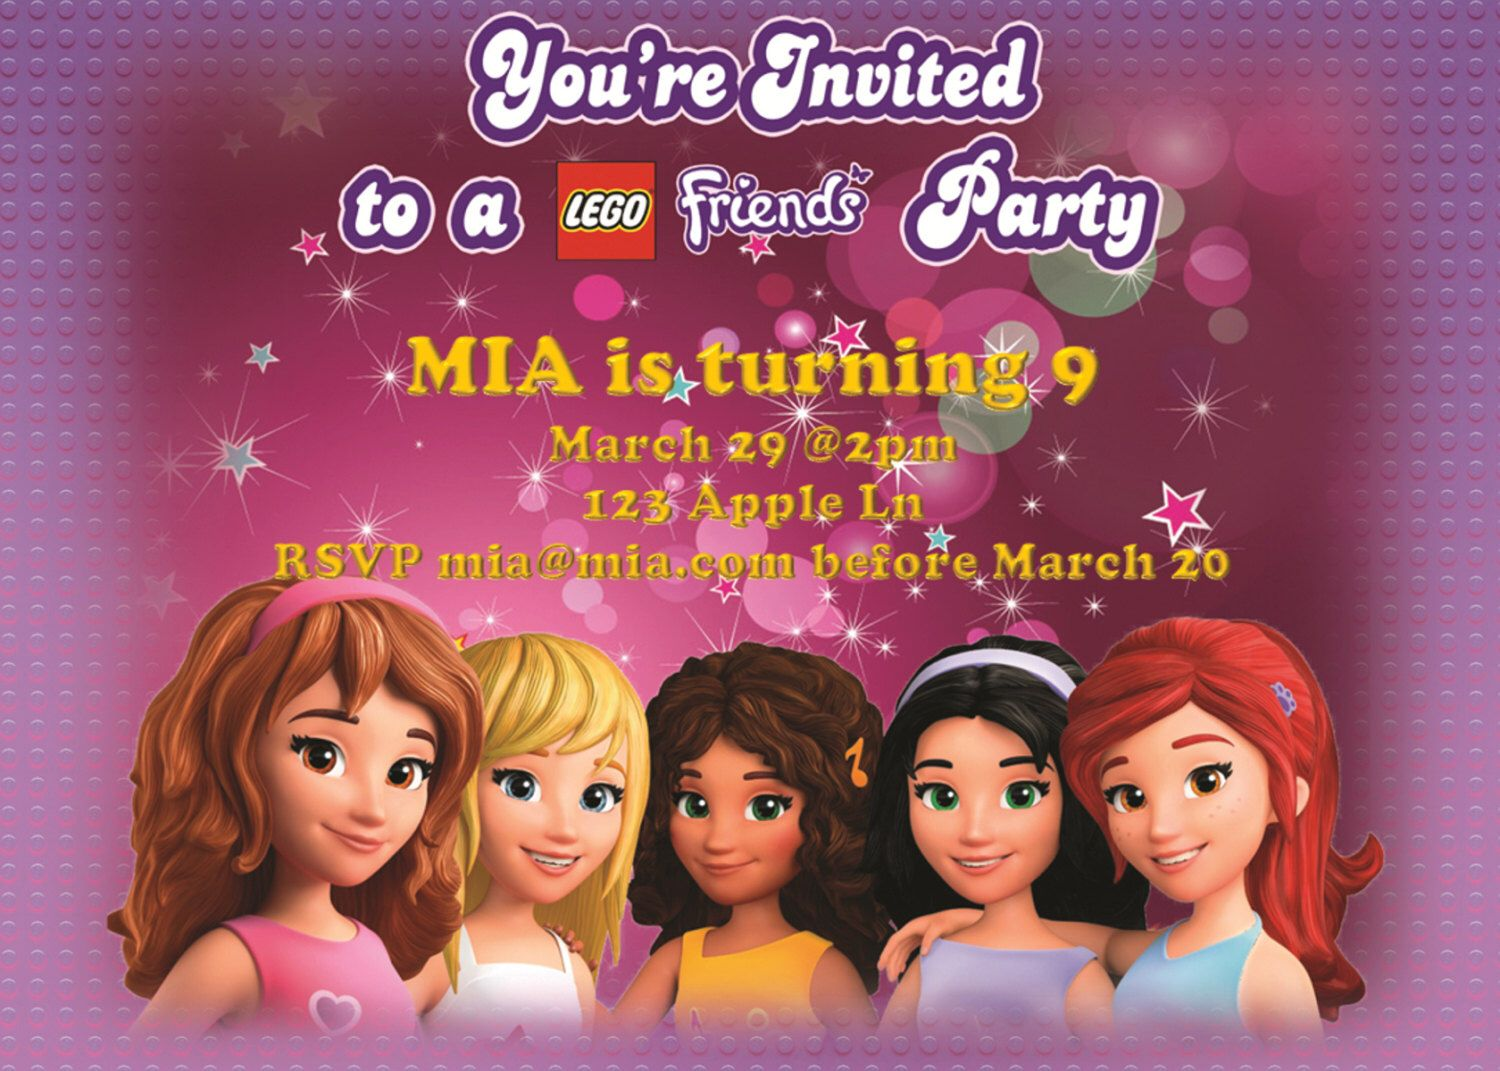 Lego FRIENDS Girl Birthday Party Invitation with Free by Design13 ...